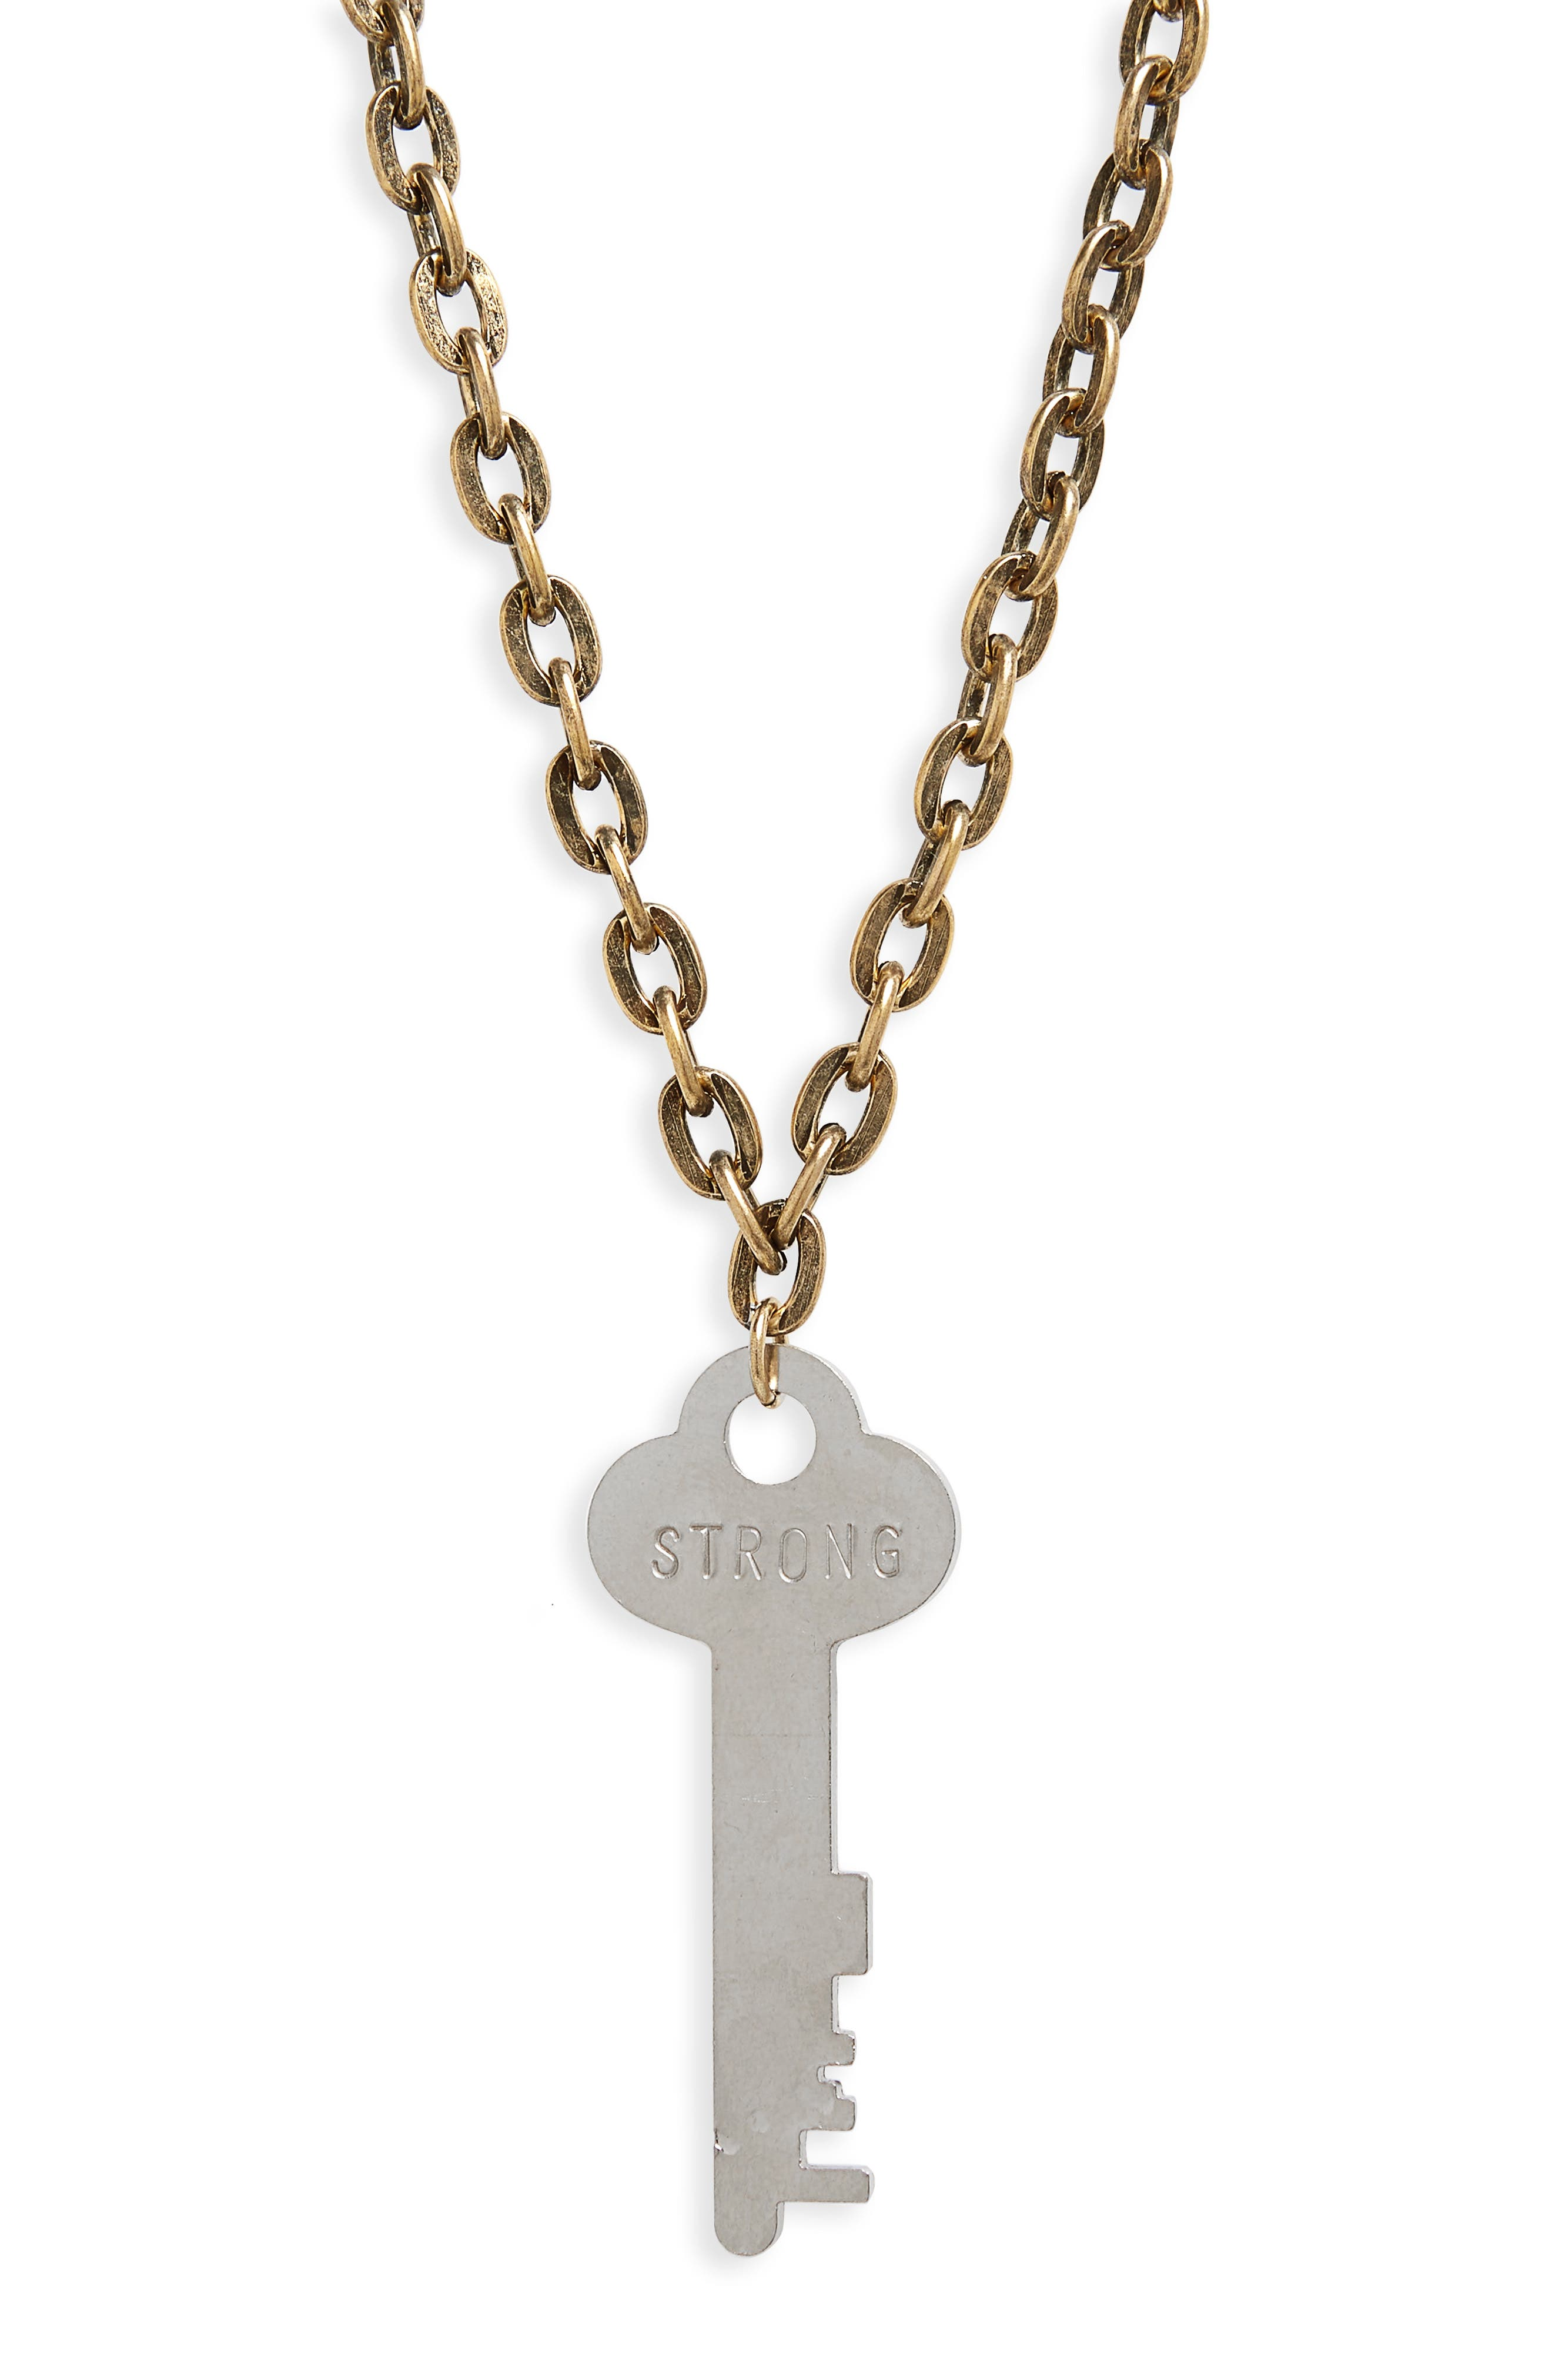 I Am Strong Key Charm Necklace,                             Alternate thumbnail 3, color,                             Gold/ Silver Key